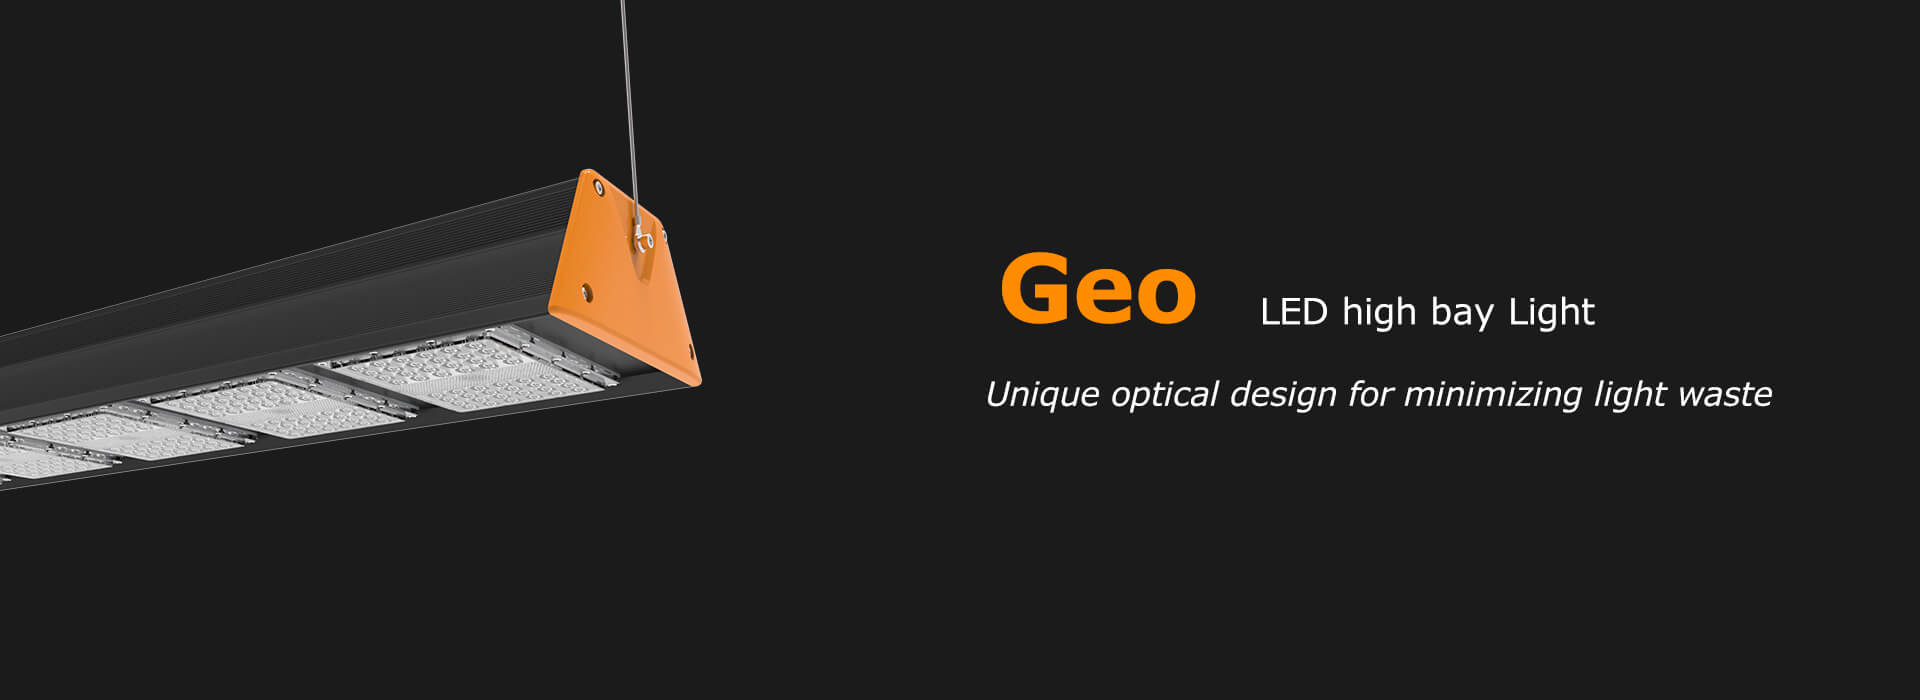 Geo LED High Bay Light